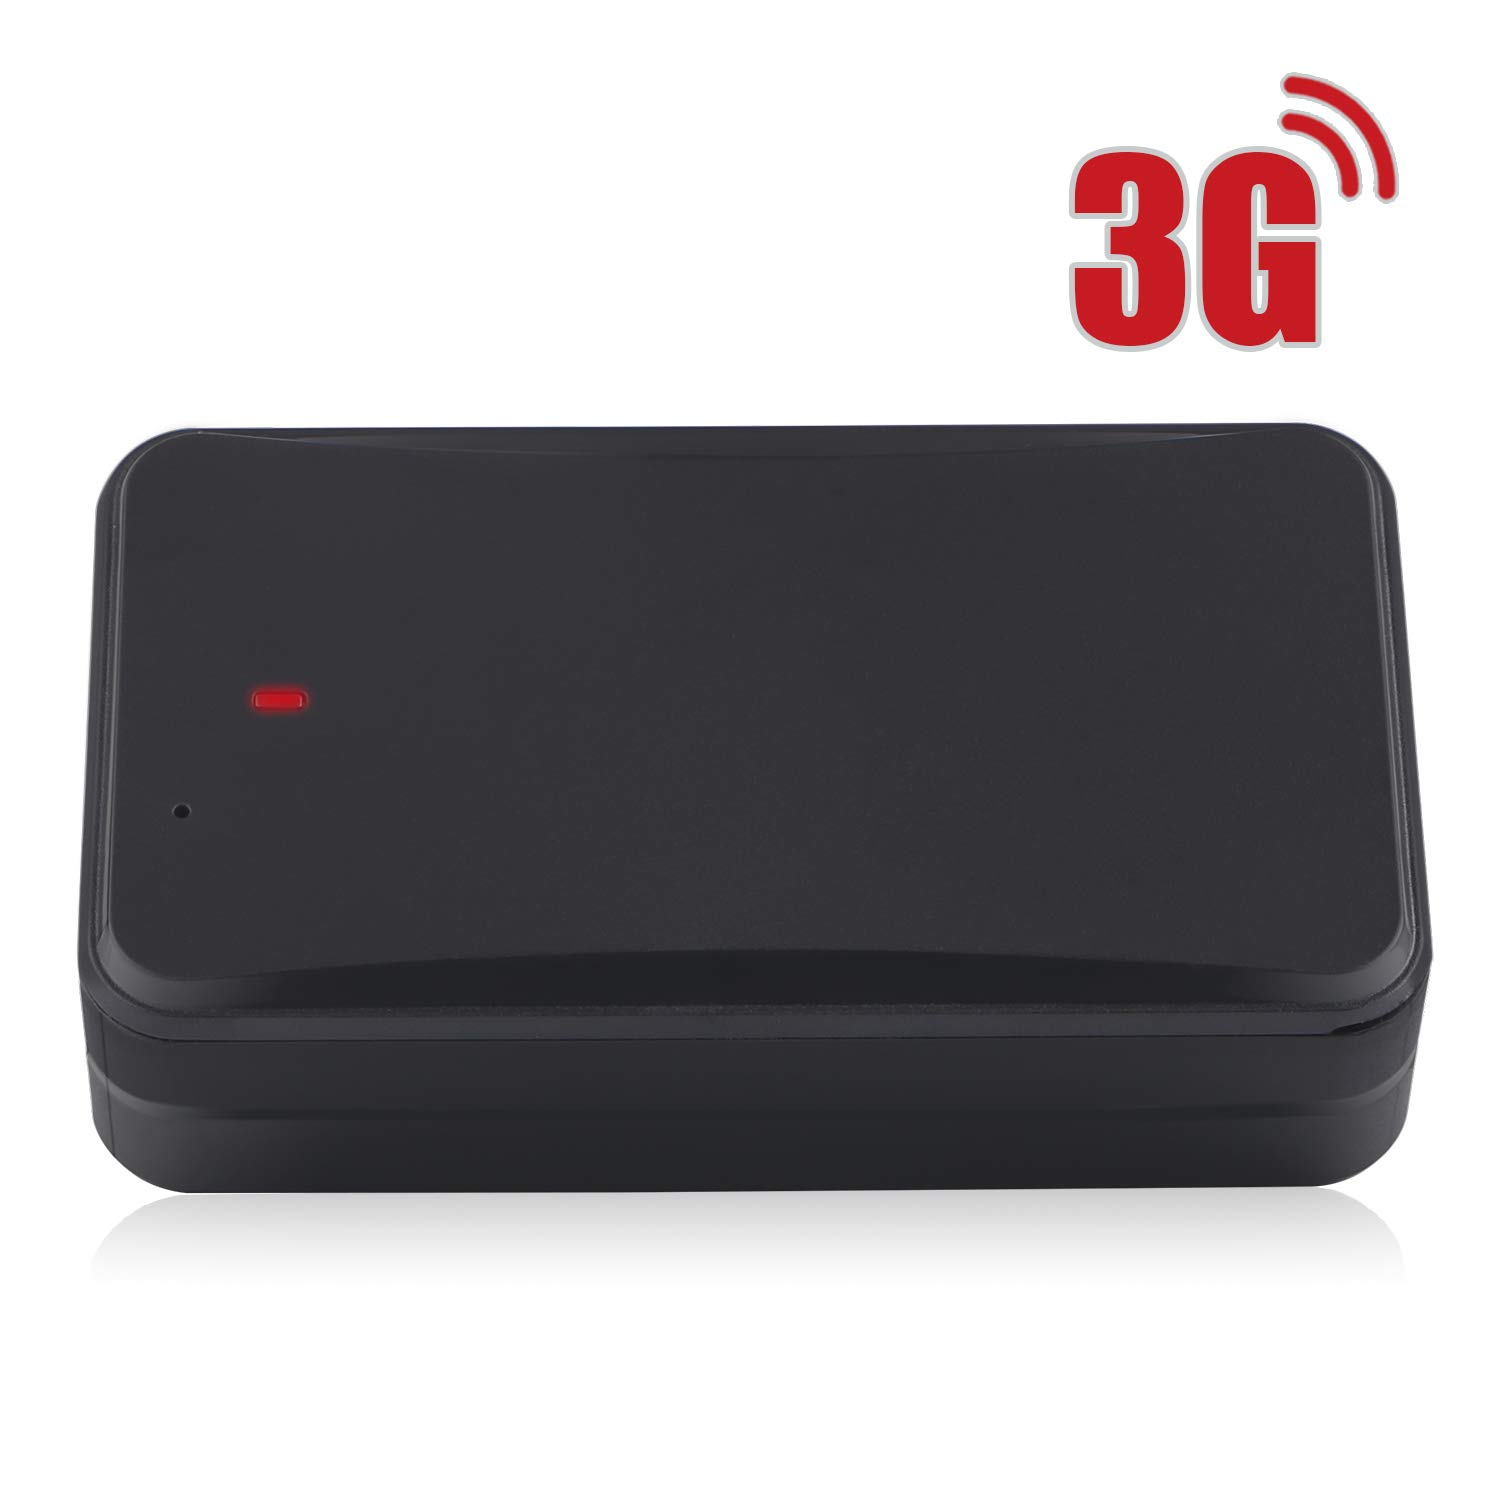 MiCODUS Car GPS Tracker, 10,000mAh Rechargeable Battery Anti-Thief 3G Mini GPS Tracker Real-time Tracking for Vehicles/Motorcycle/Bicycle/Kids/Wallet/Documents/Bags with Free APP(3G/2G SIM is Needed)